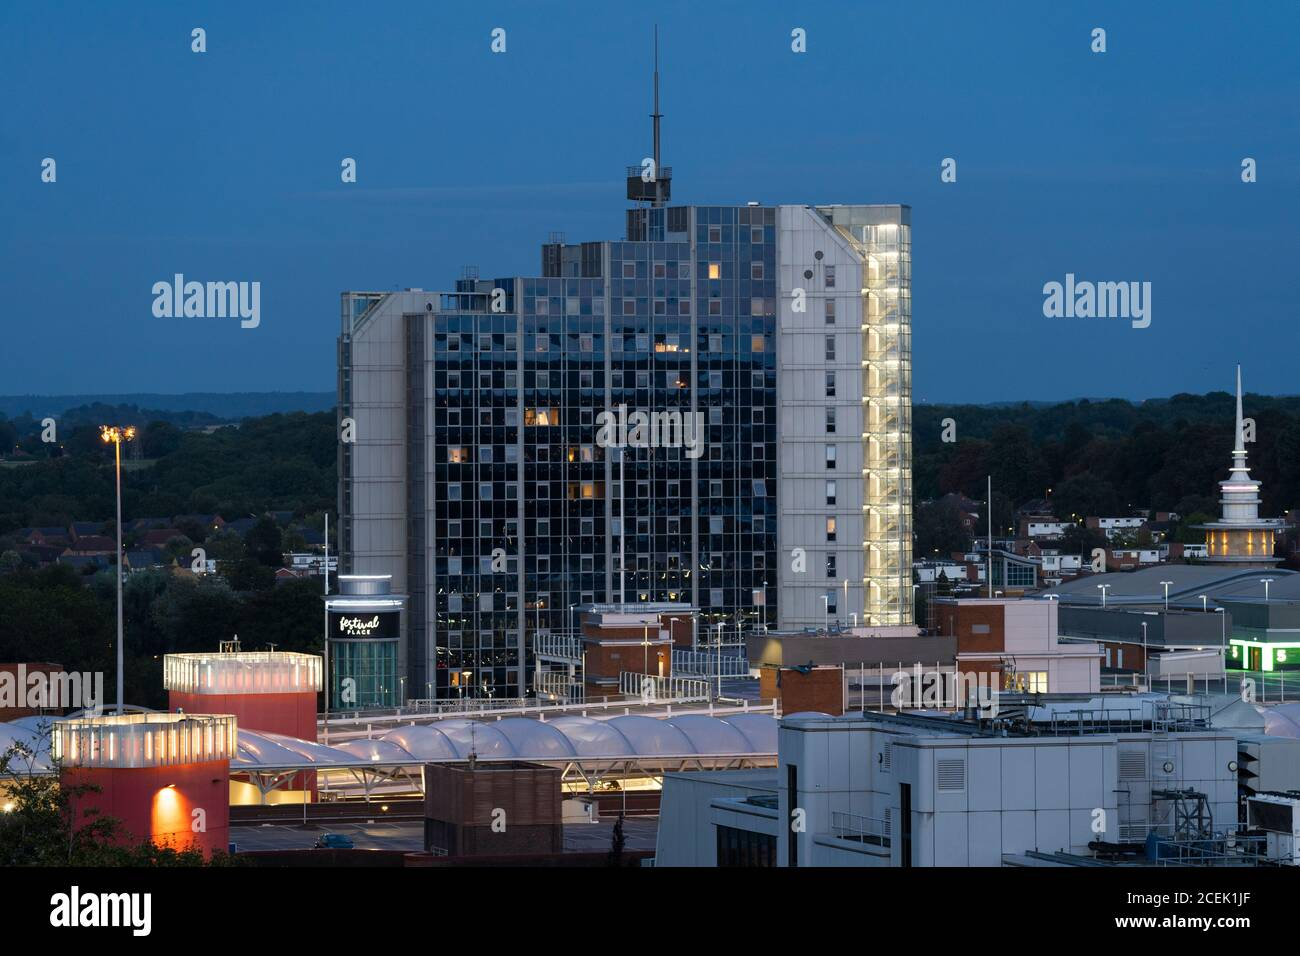 churchill-place-at-night-a-high-rise-apa